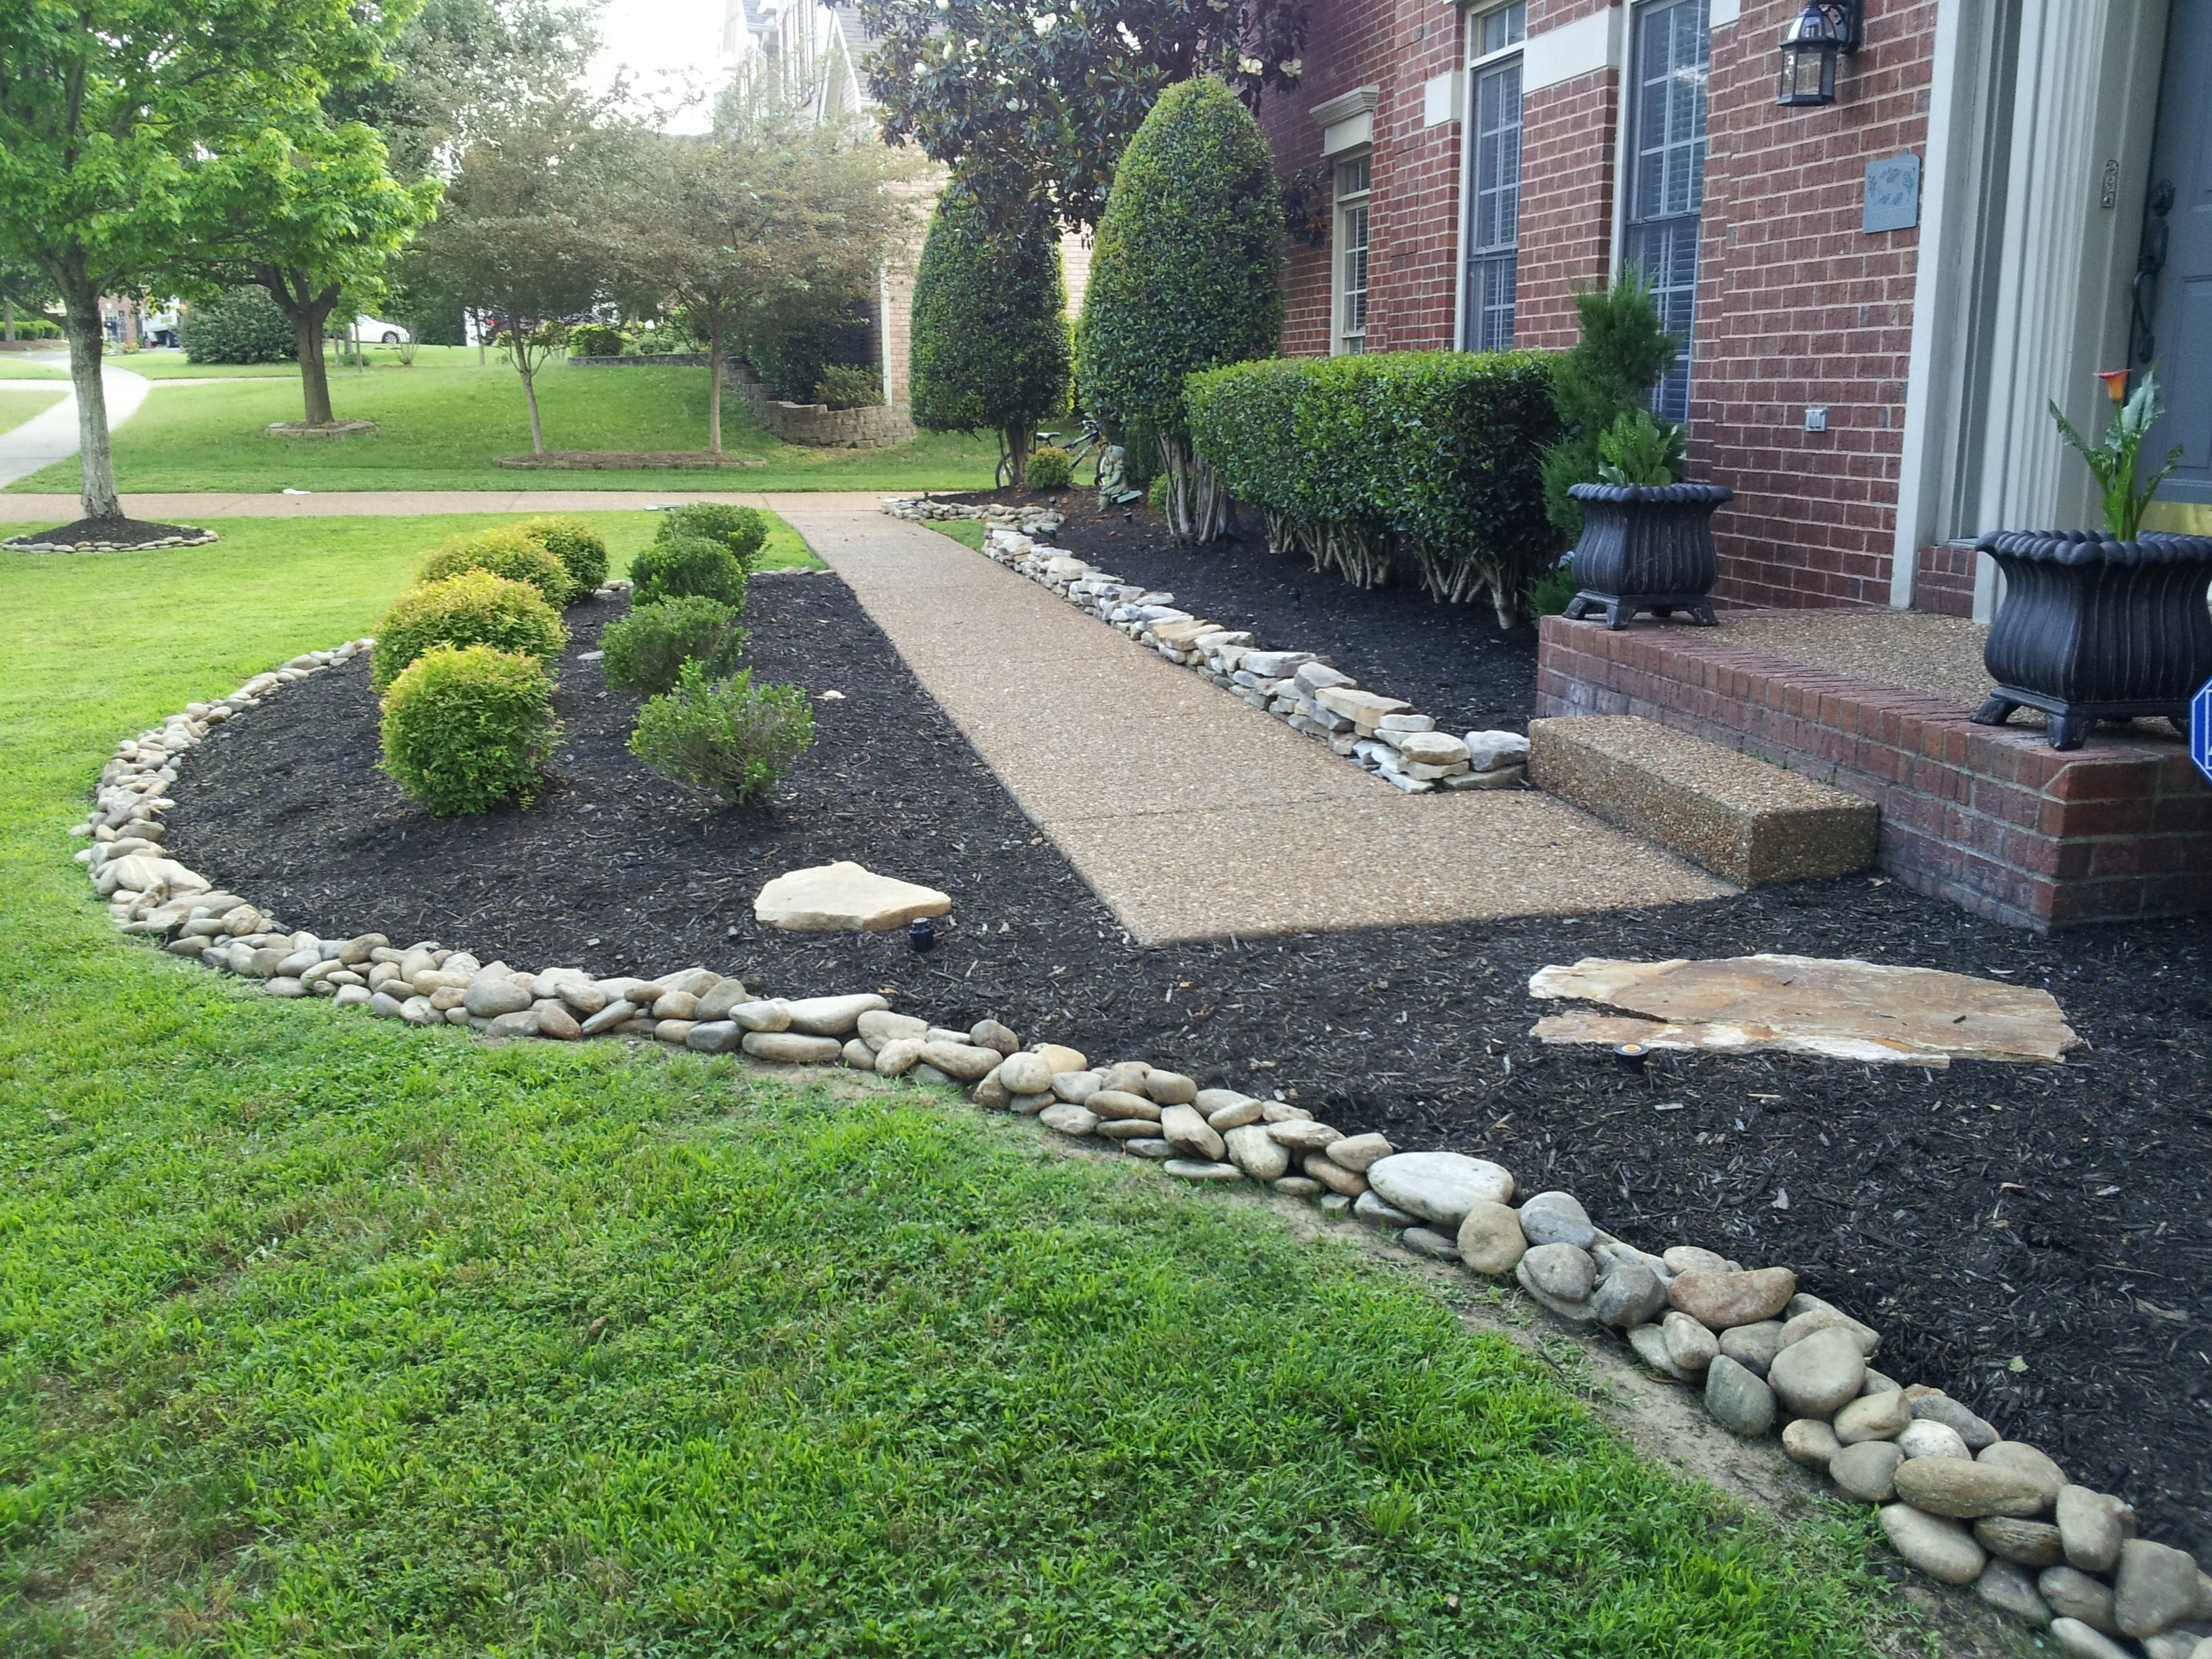 garden ideas - Garden Design Using Rocks